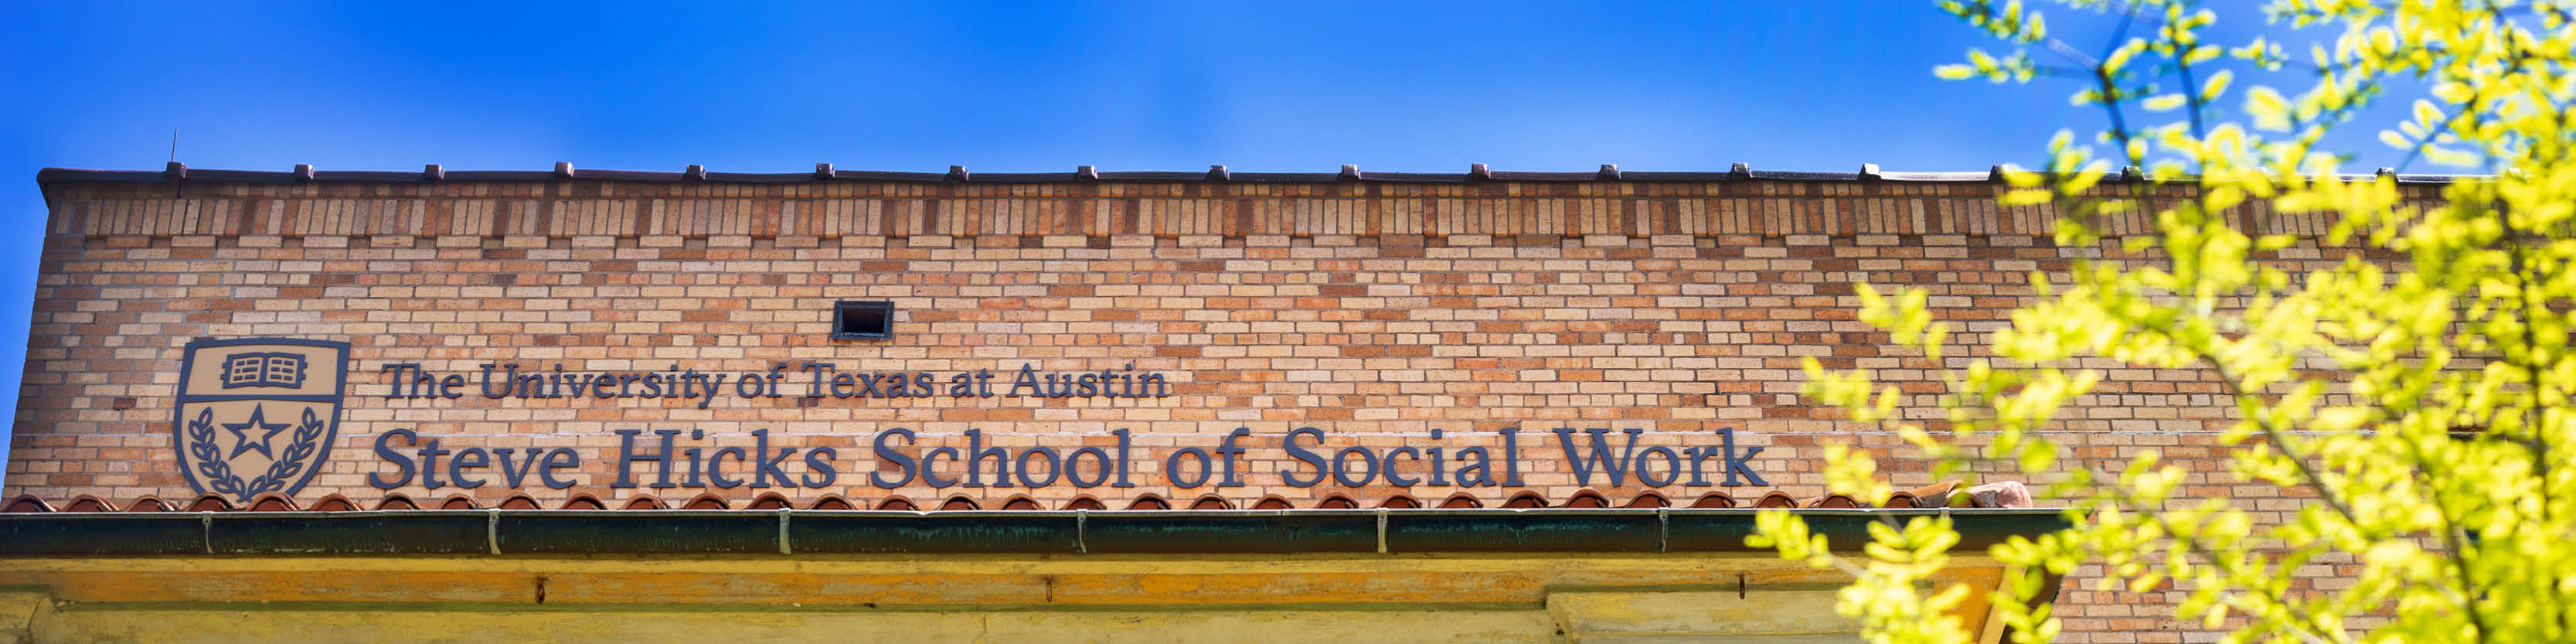 Steve Hicks School of Social Work building